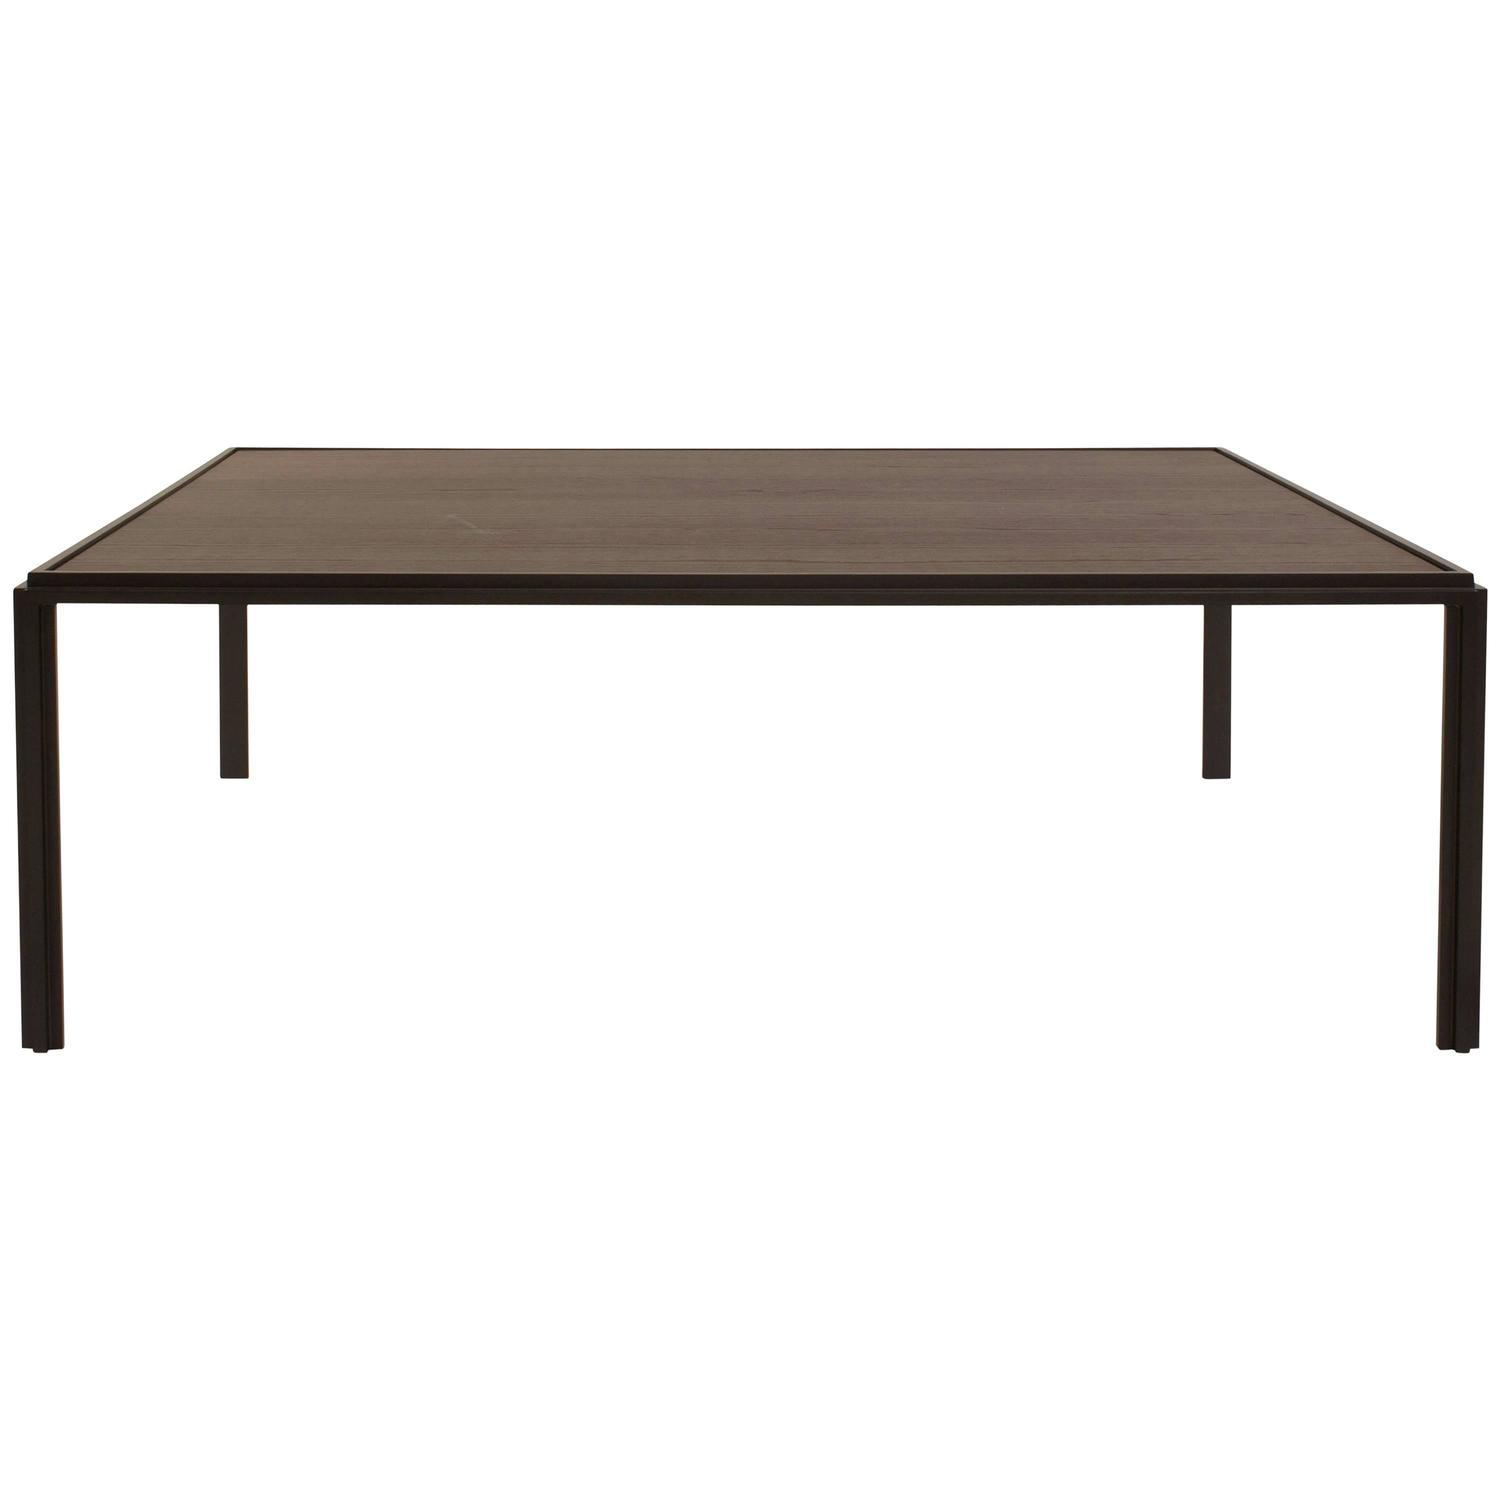 Metal and oak jan coffee table by vincent van duysen for molteni metal and oak jan coffee table by vincent van duysen for molteni italy at 1stdibs geotapseo Image collections